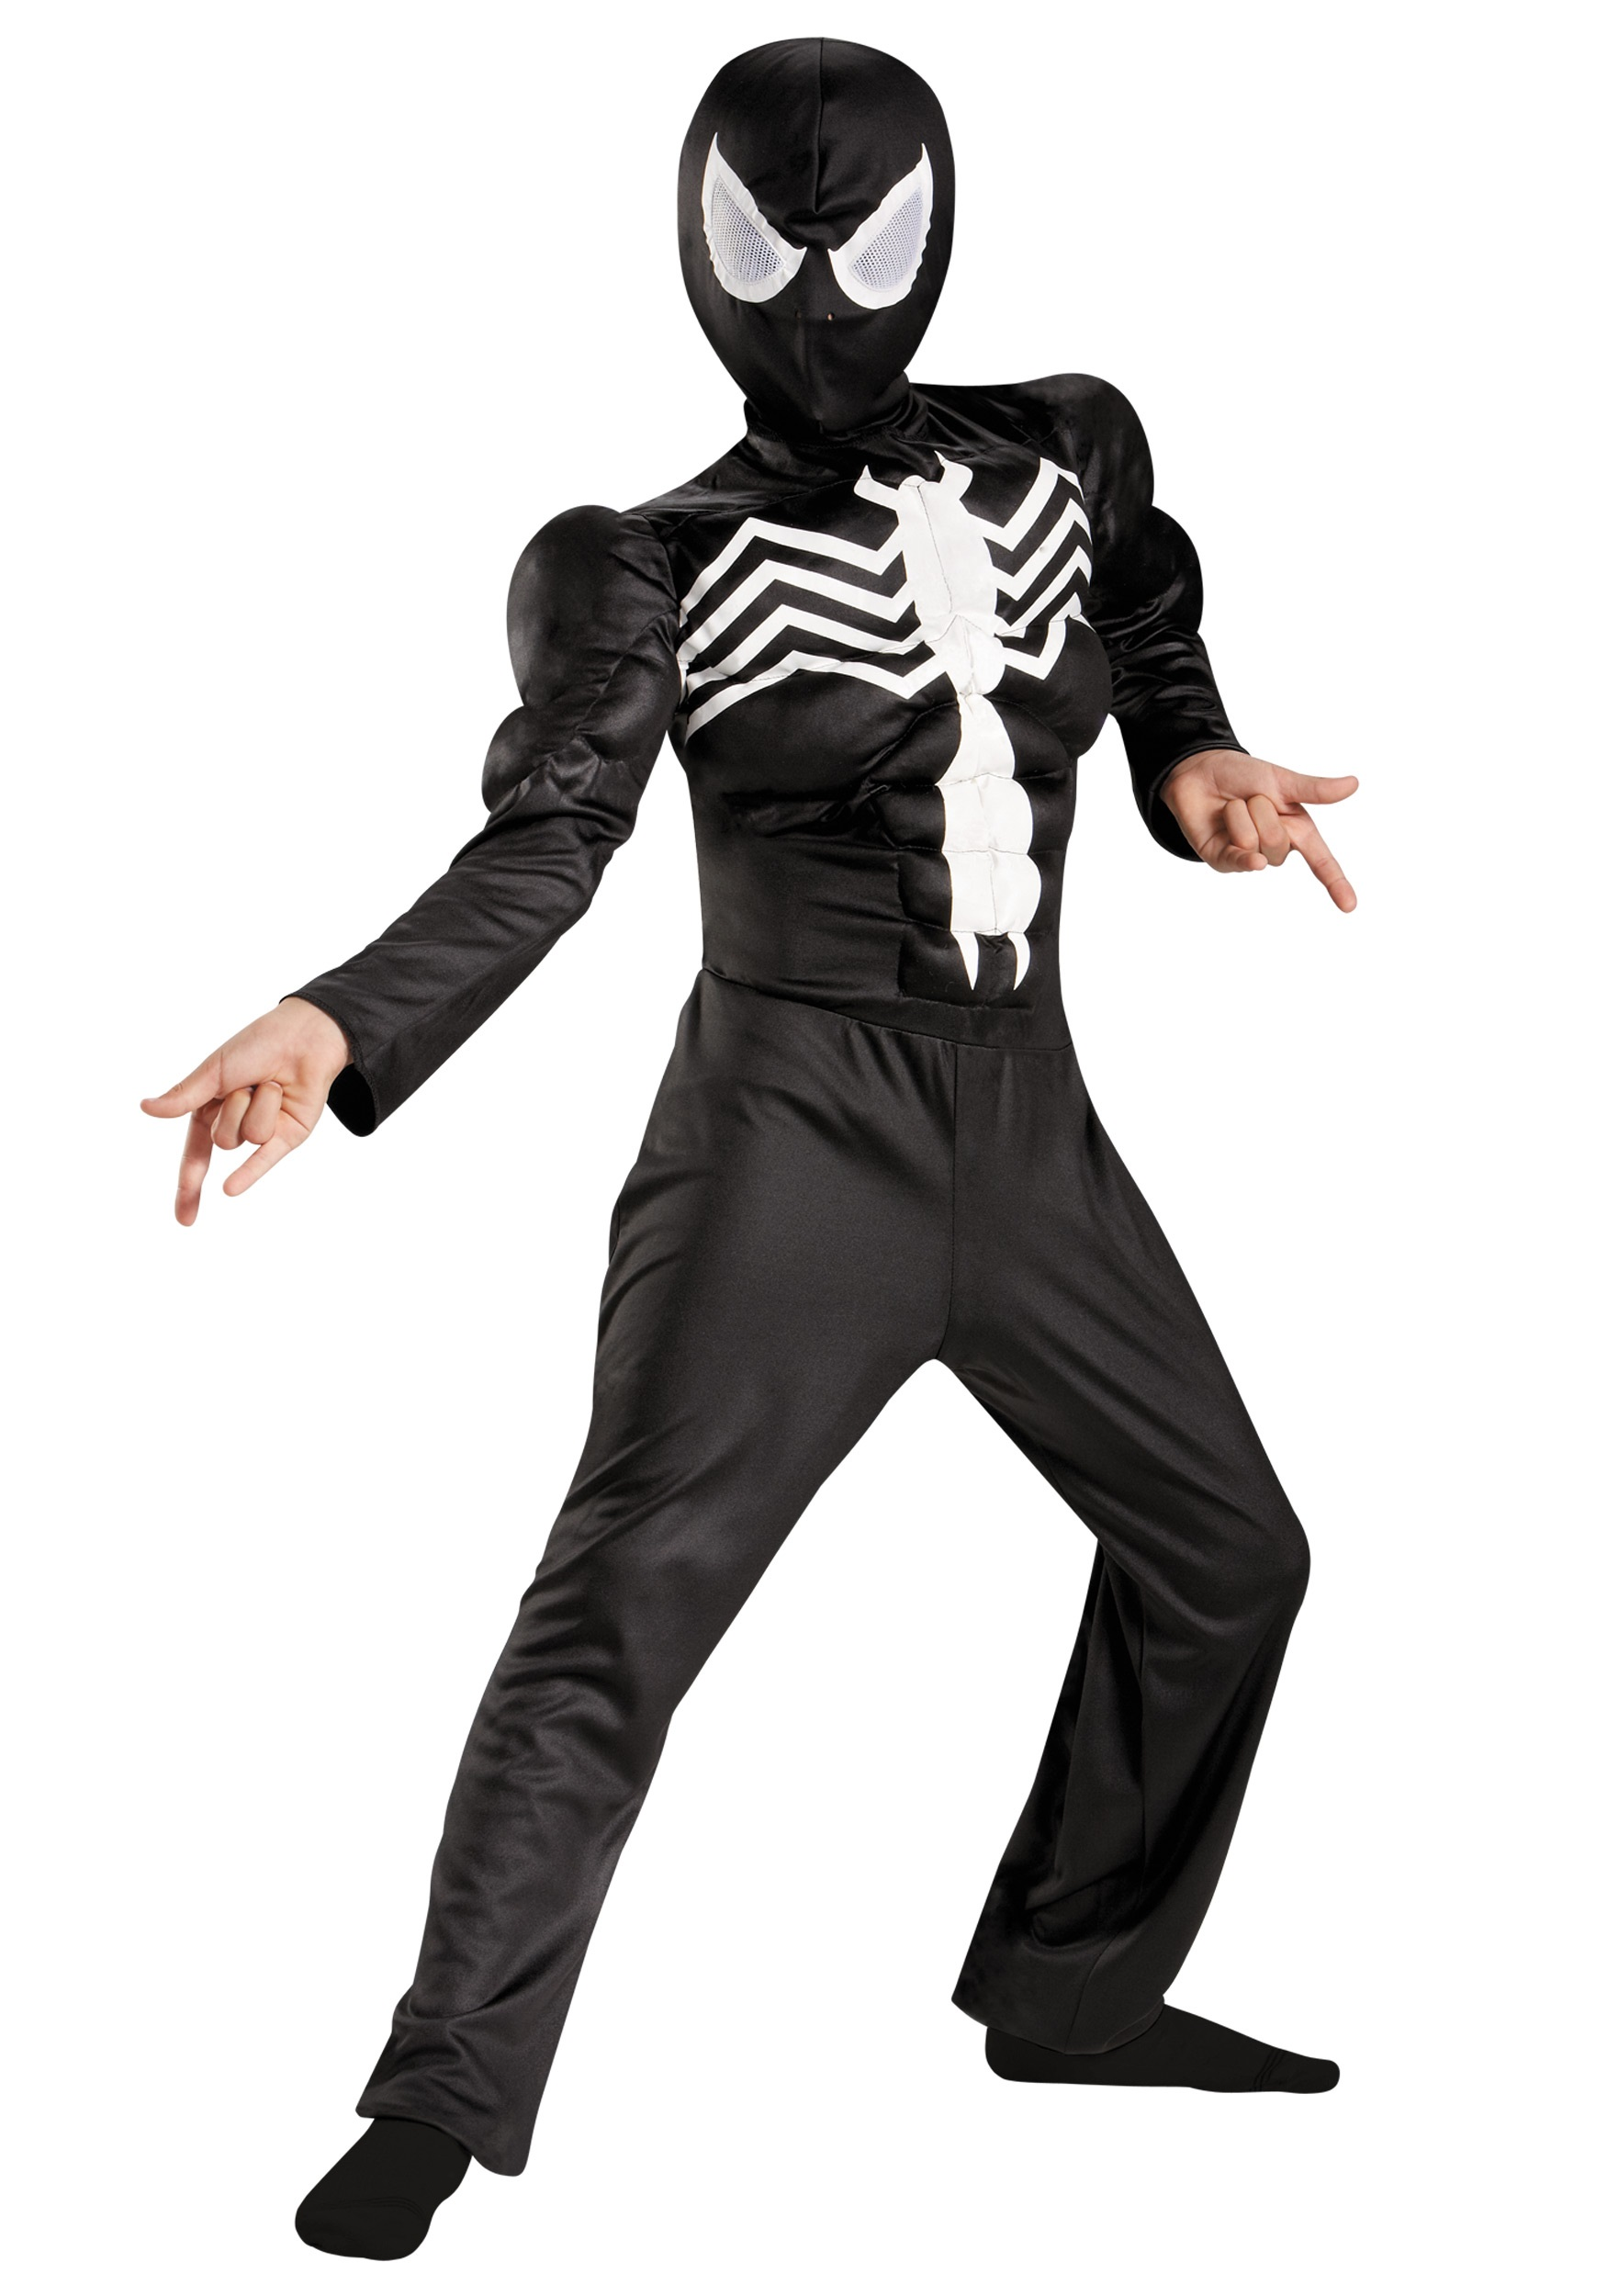 Boys Ultimate Black Suited Spider-Man Classic Muscle Costume  sc 1 st  Halloween Costumes & Boys Ultimate Black Suited Spider-Man Classic Muscle Costume ...